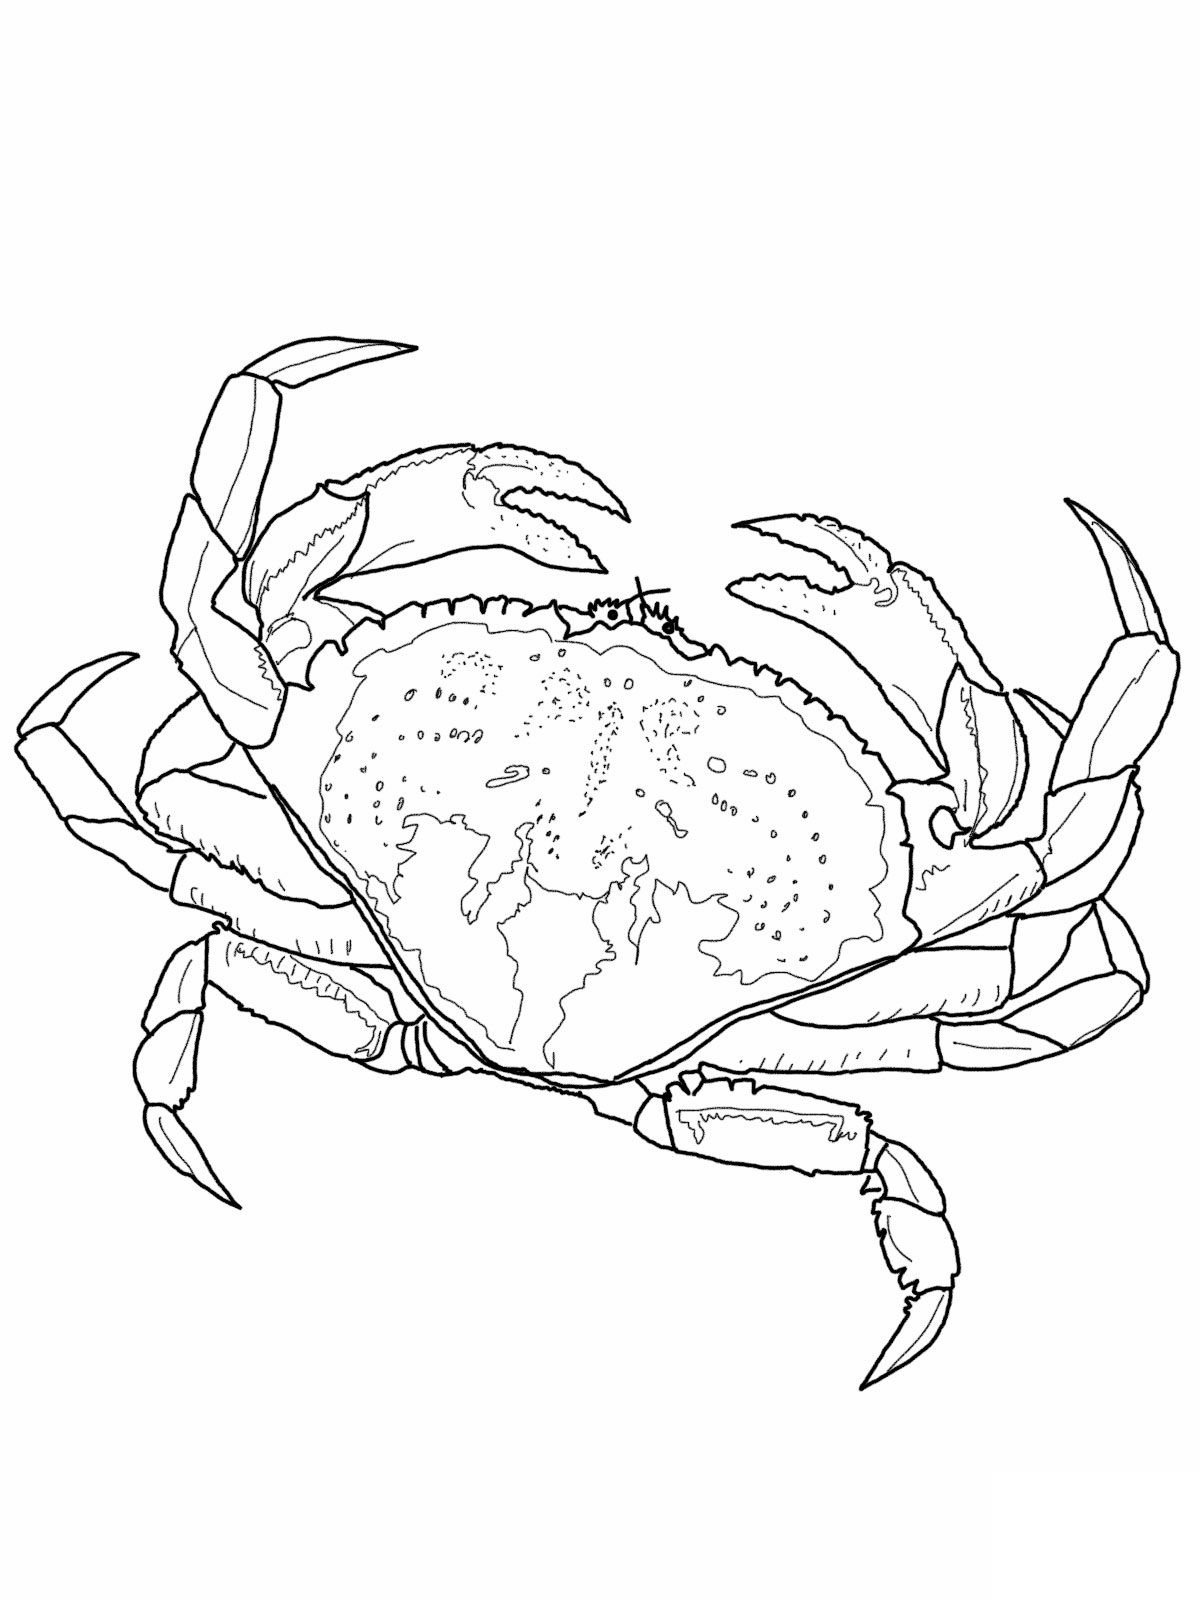 pictures of crab coloring pages - Crab Coloring Pages